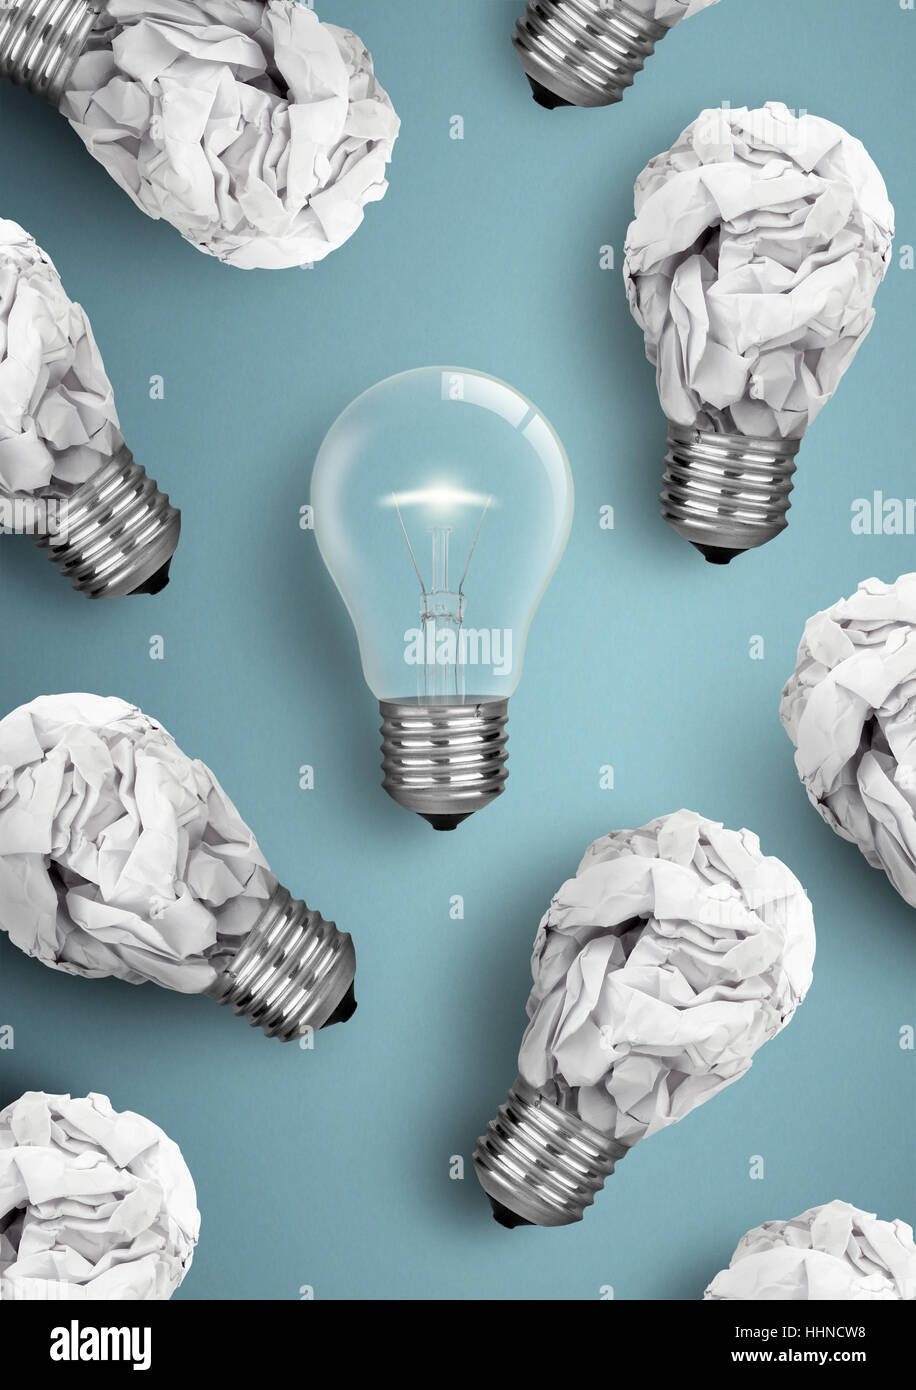 Idea creativa concetto, carta sgualcita lampadine Foto Stock